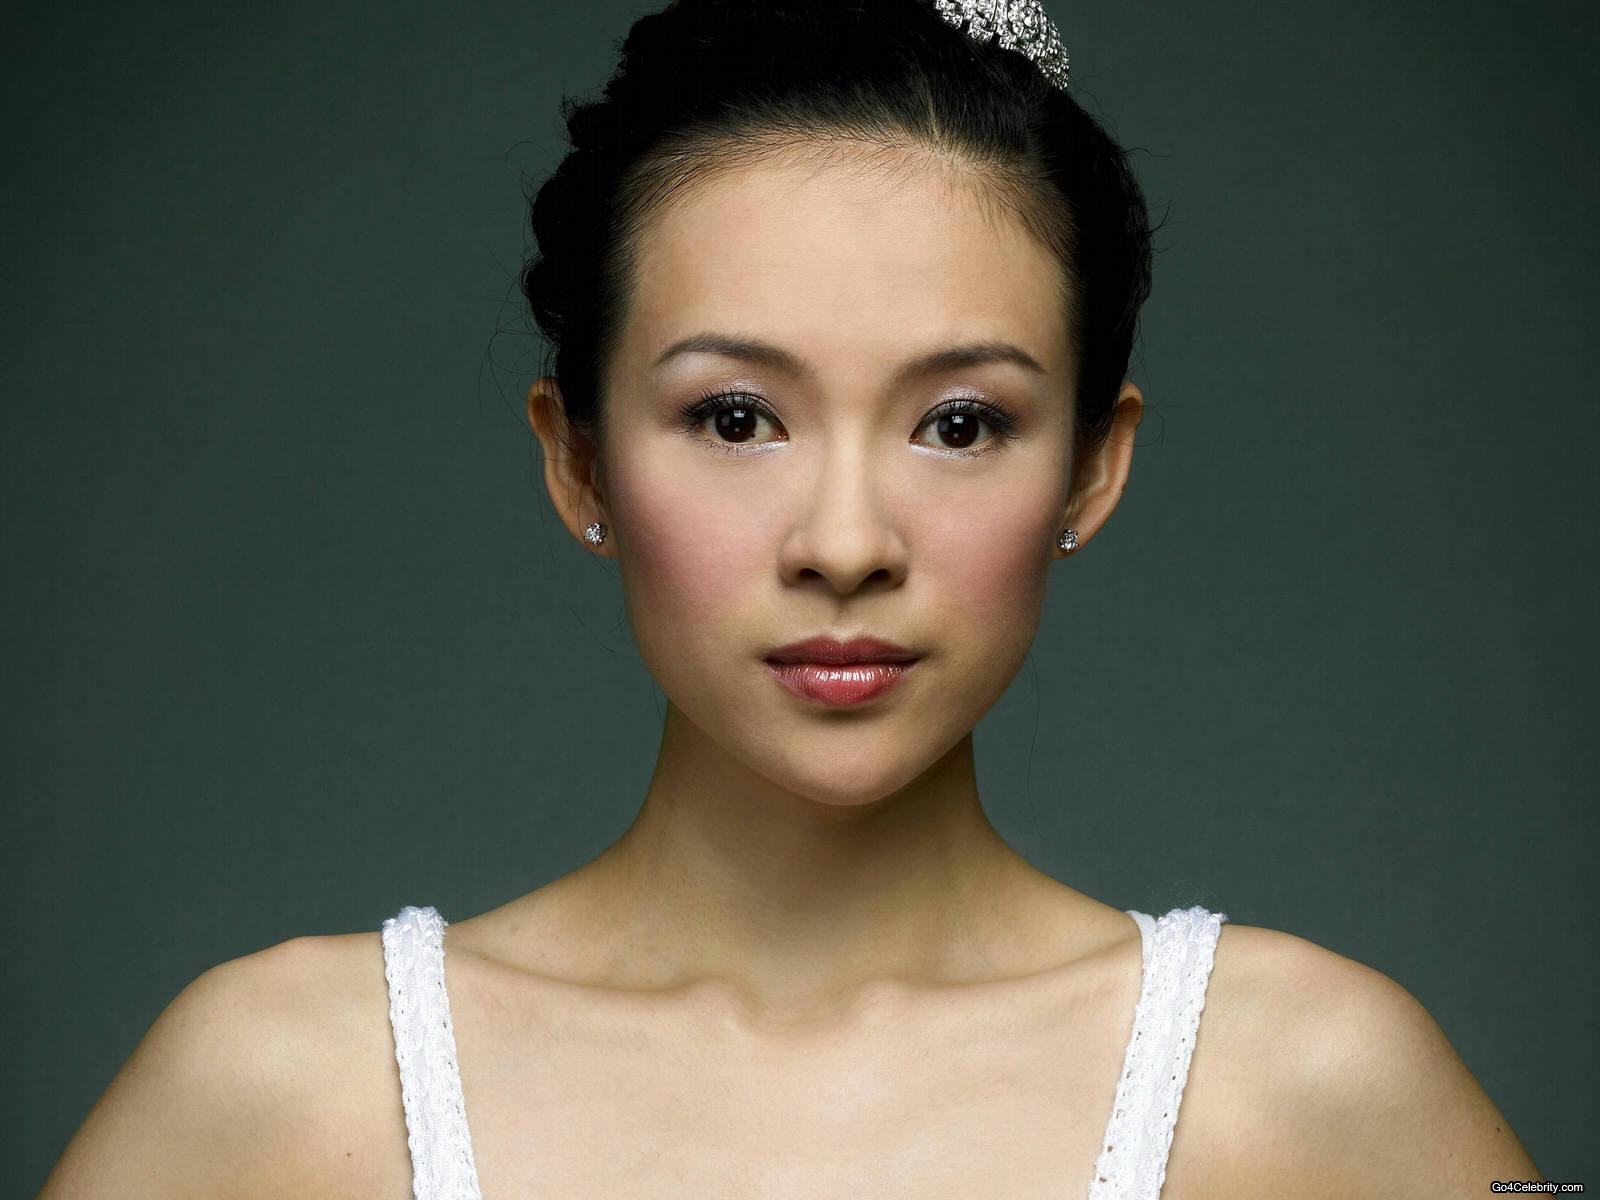 Zhang Ziyi (Chinese: ???, pinyin: Zh?ng Z?yí; born February 9, 1979) is a Chinese film actress and singer. Zhang is considered one of the Four Young Dan ...